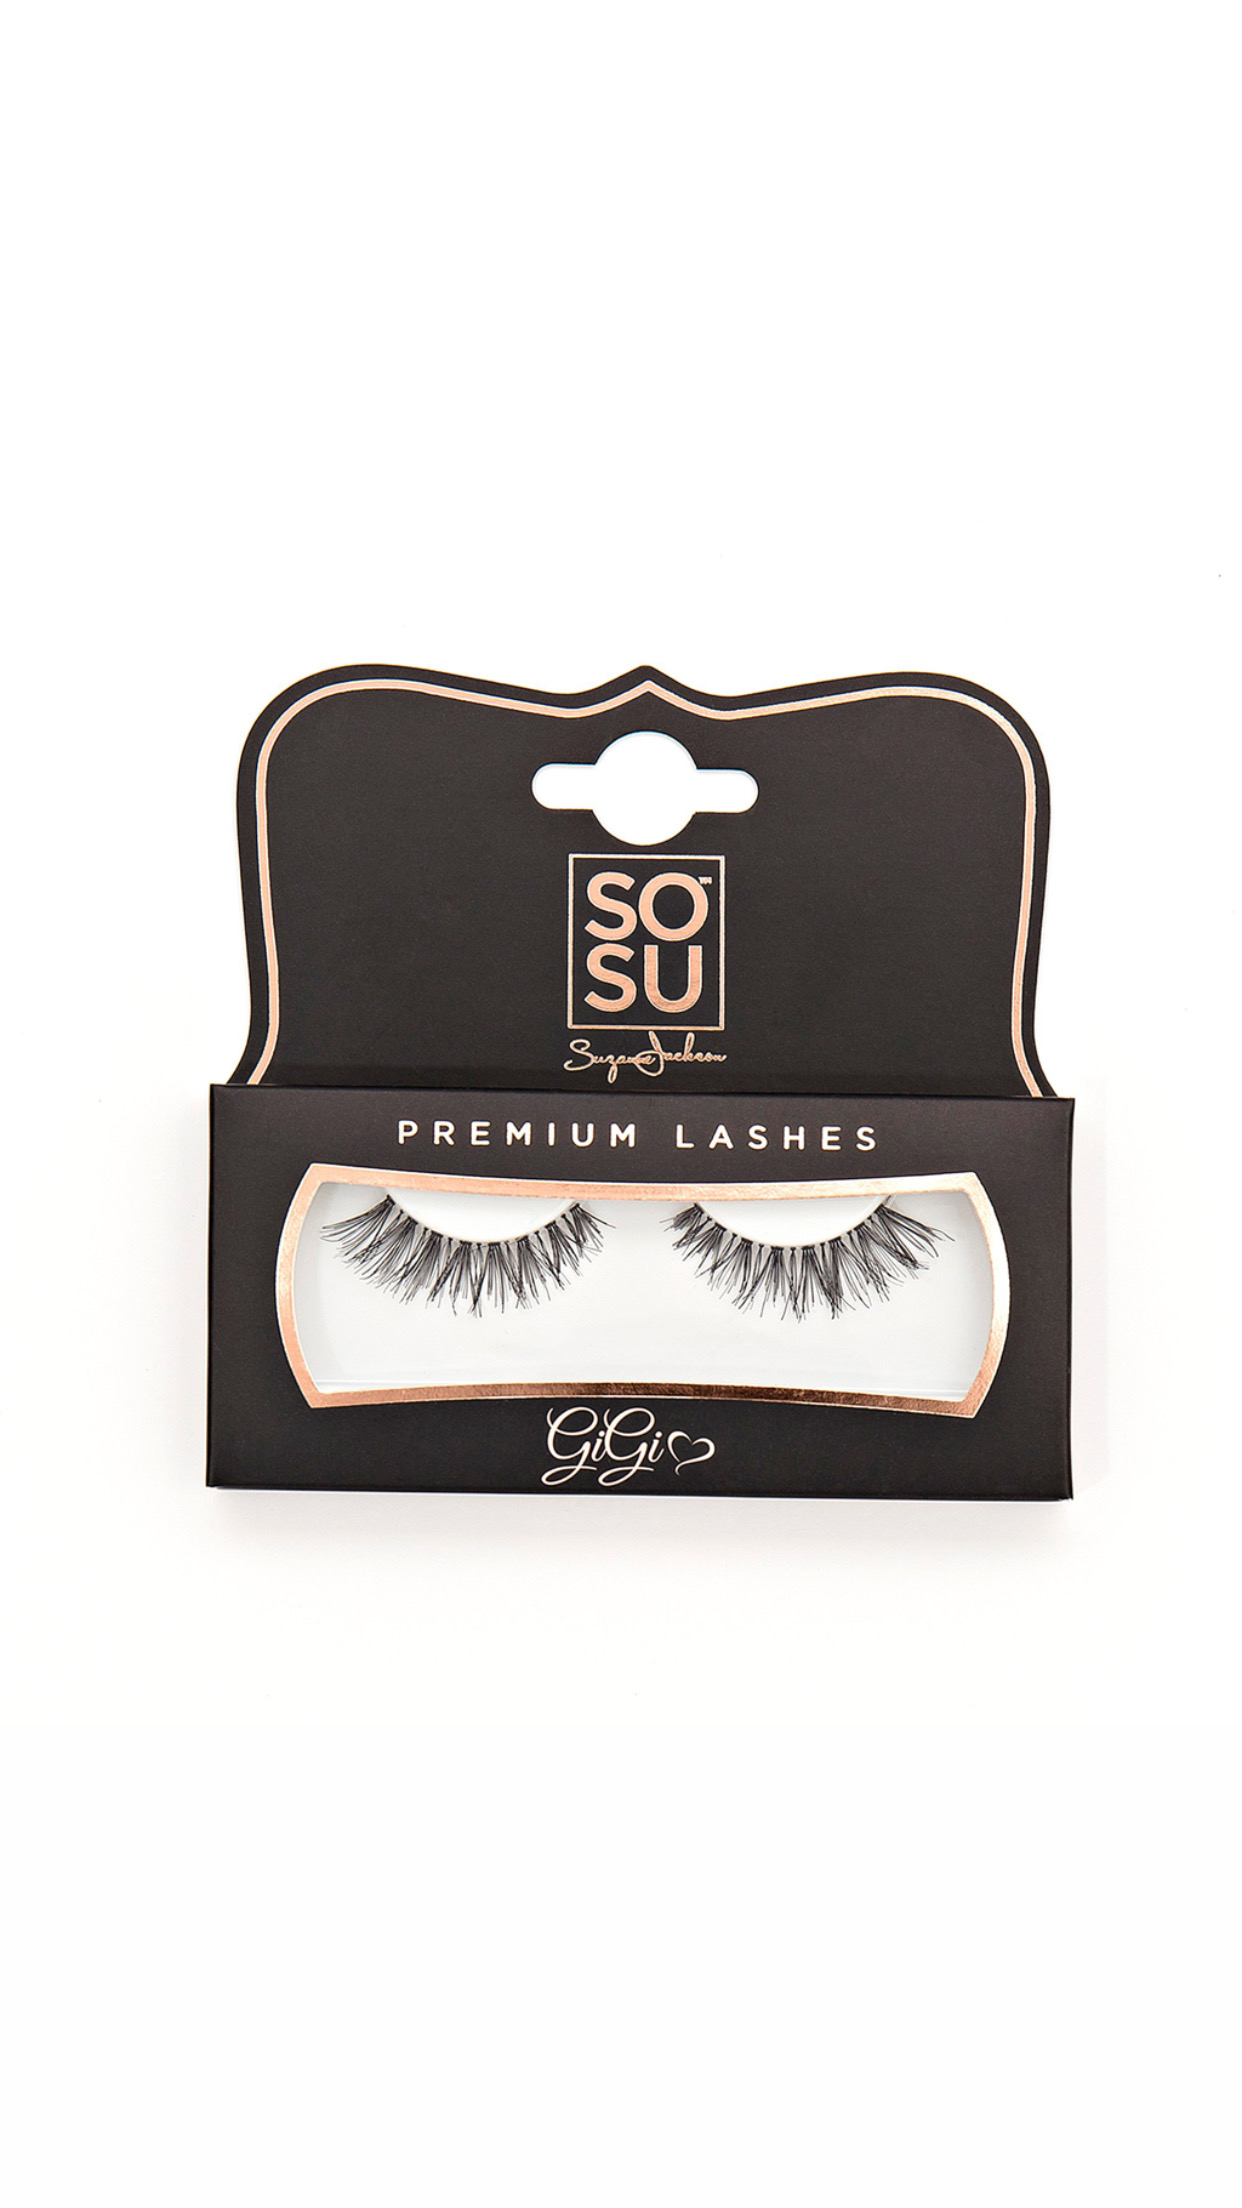 SoSubySJ False Lashes in Gigi